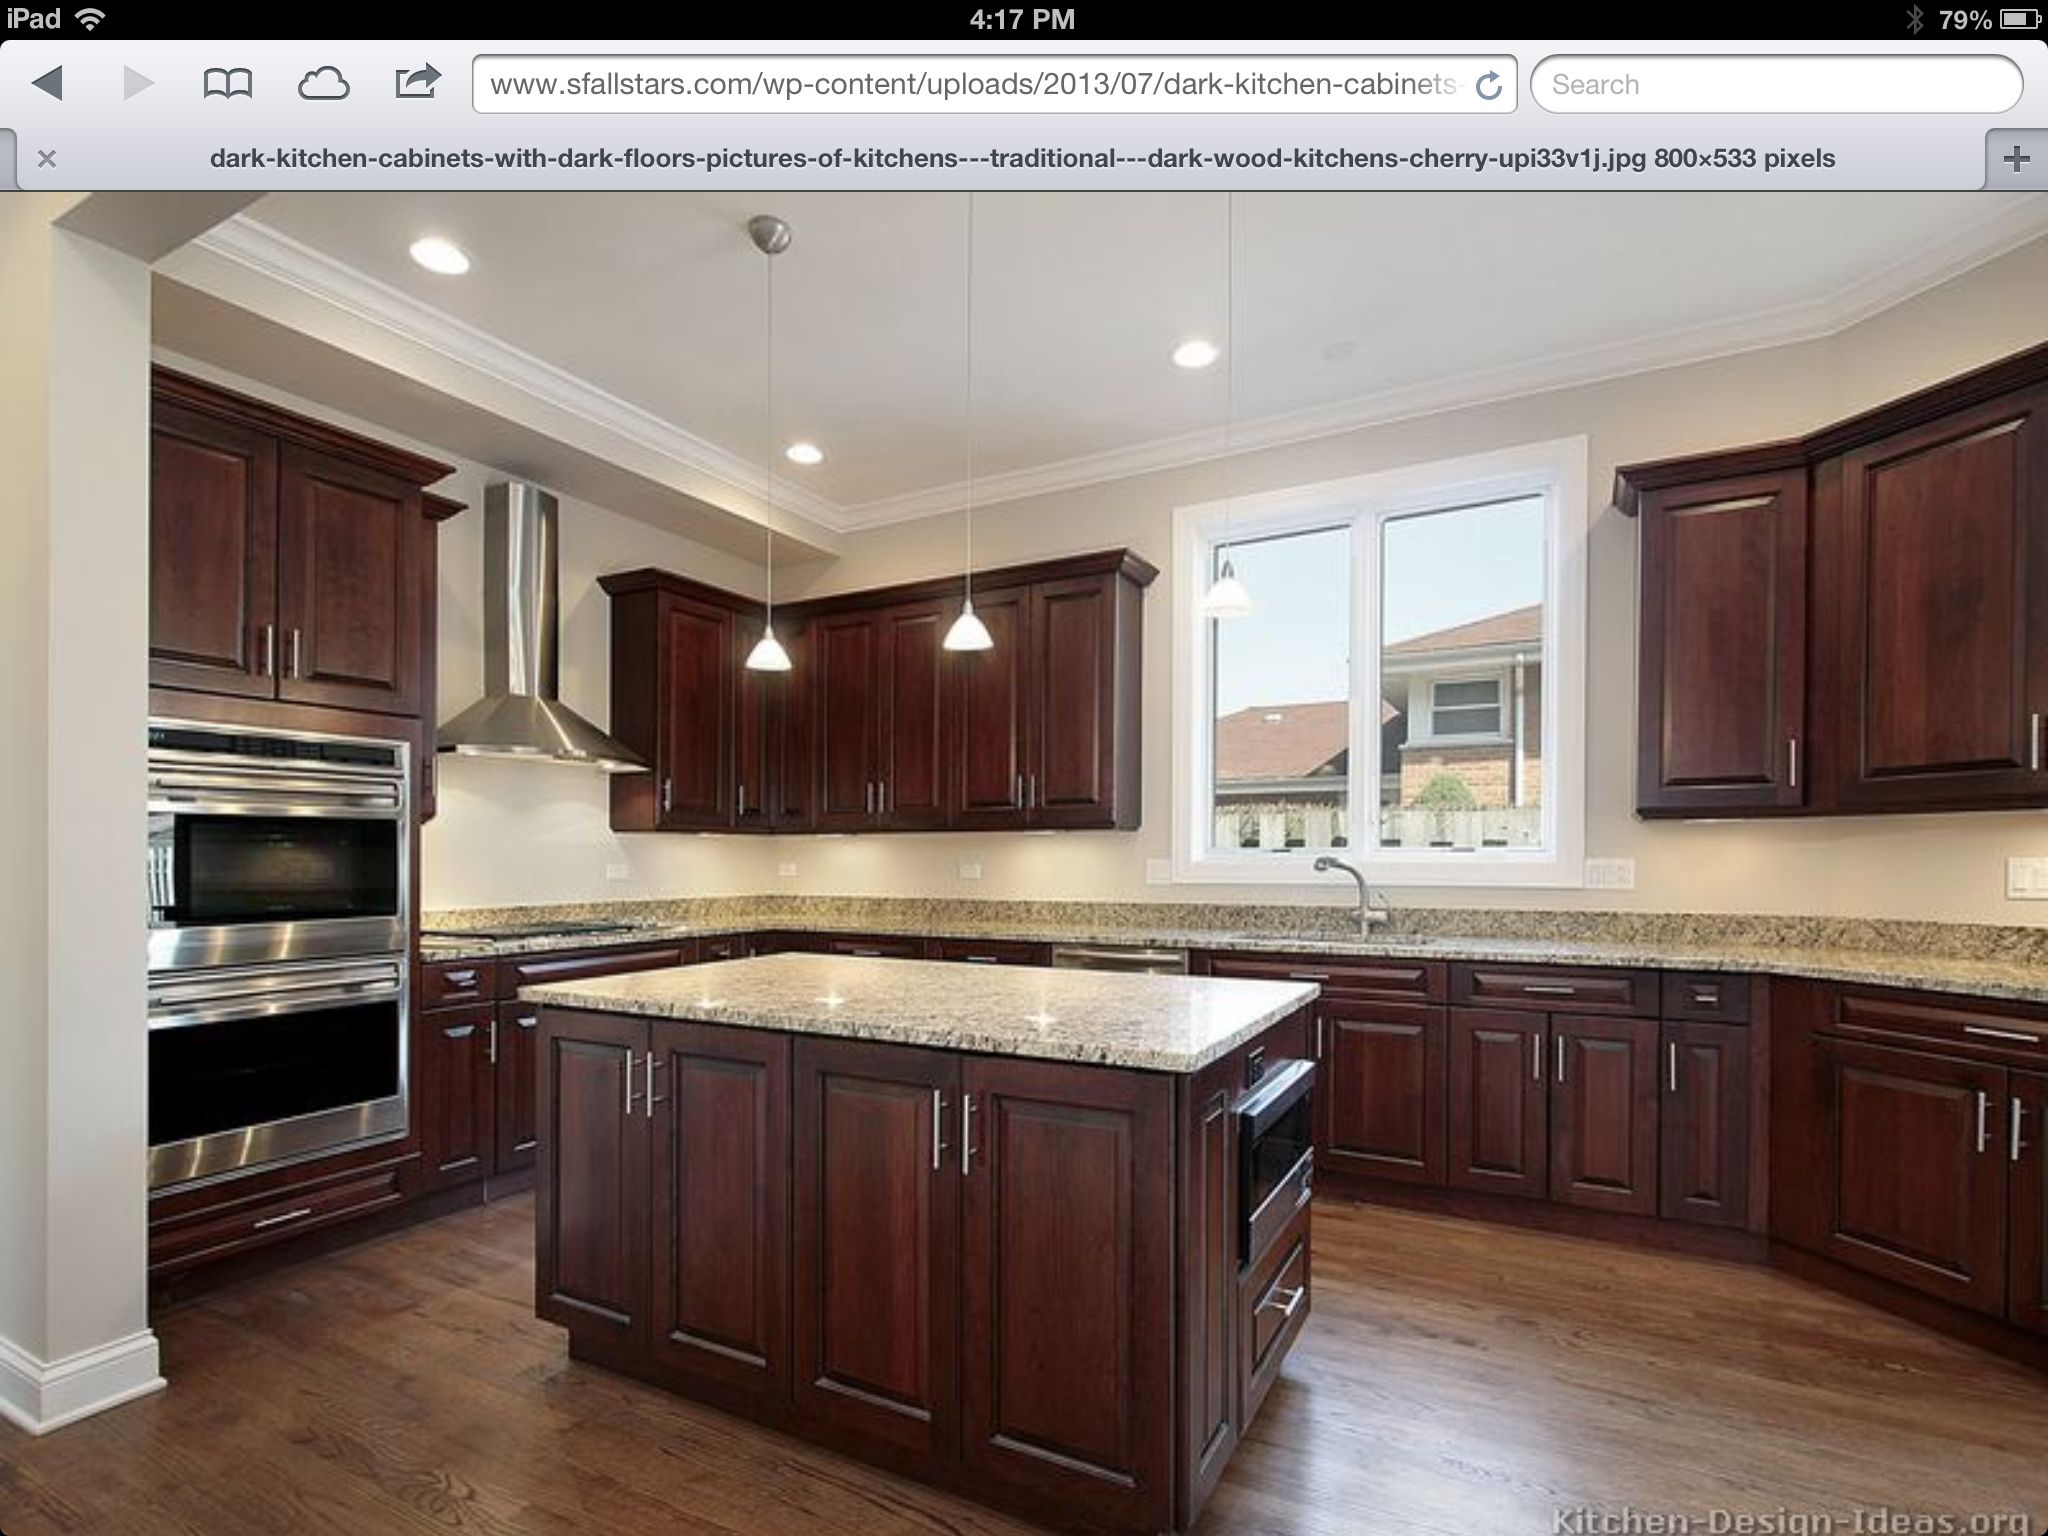 Hickory floors cherry cabinets dark wood kitchen cabinets dark cabinets and dark floors